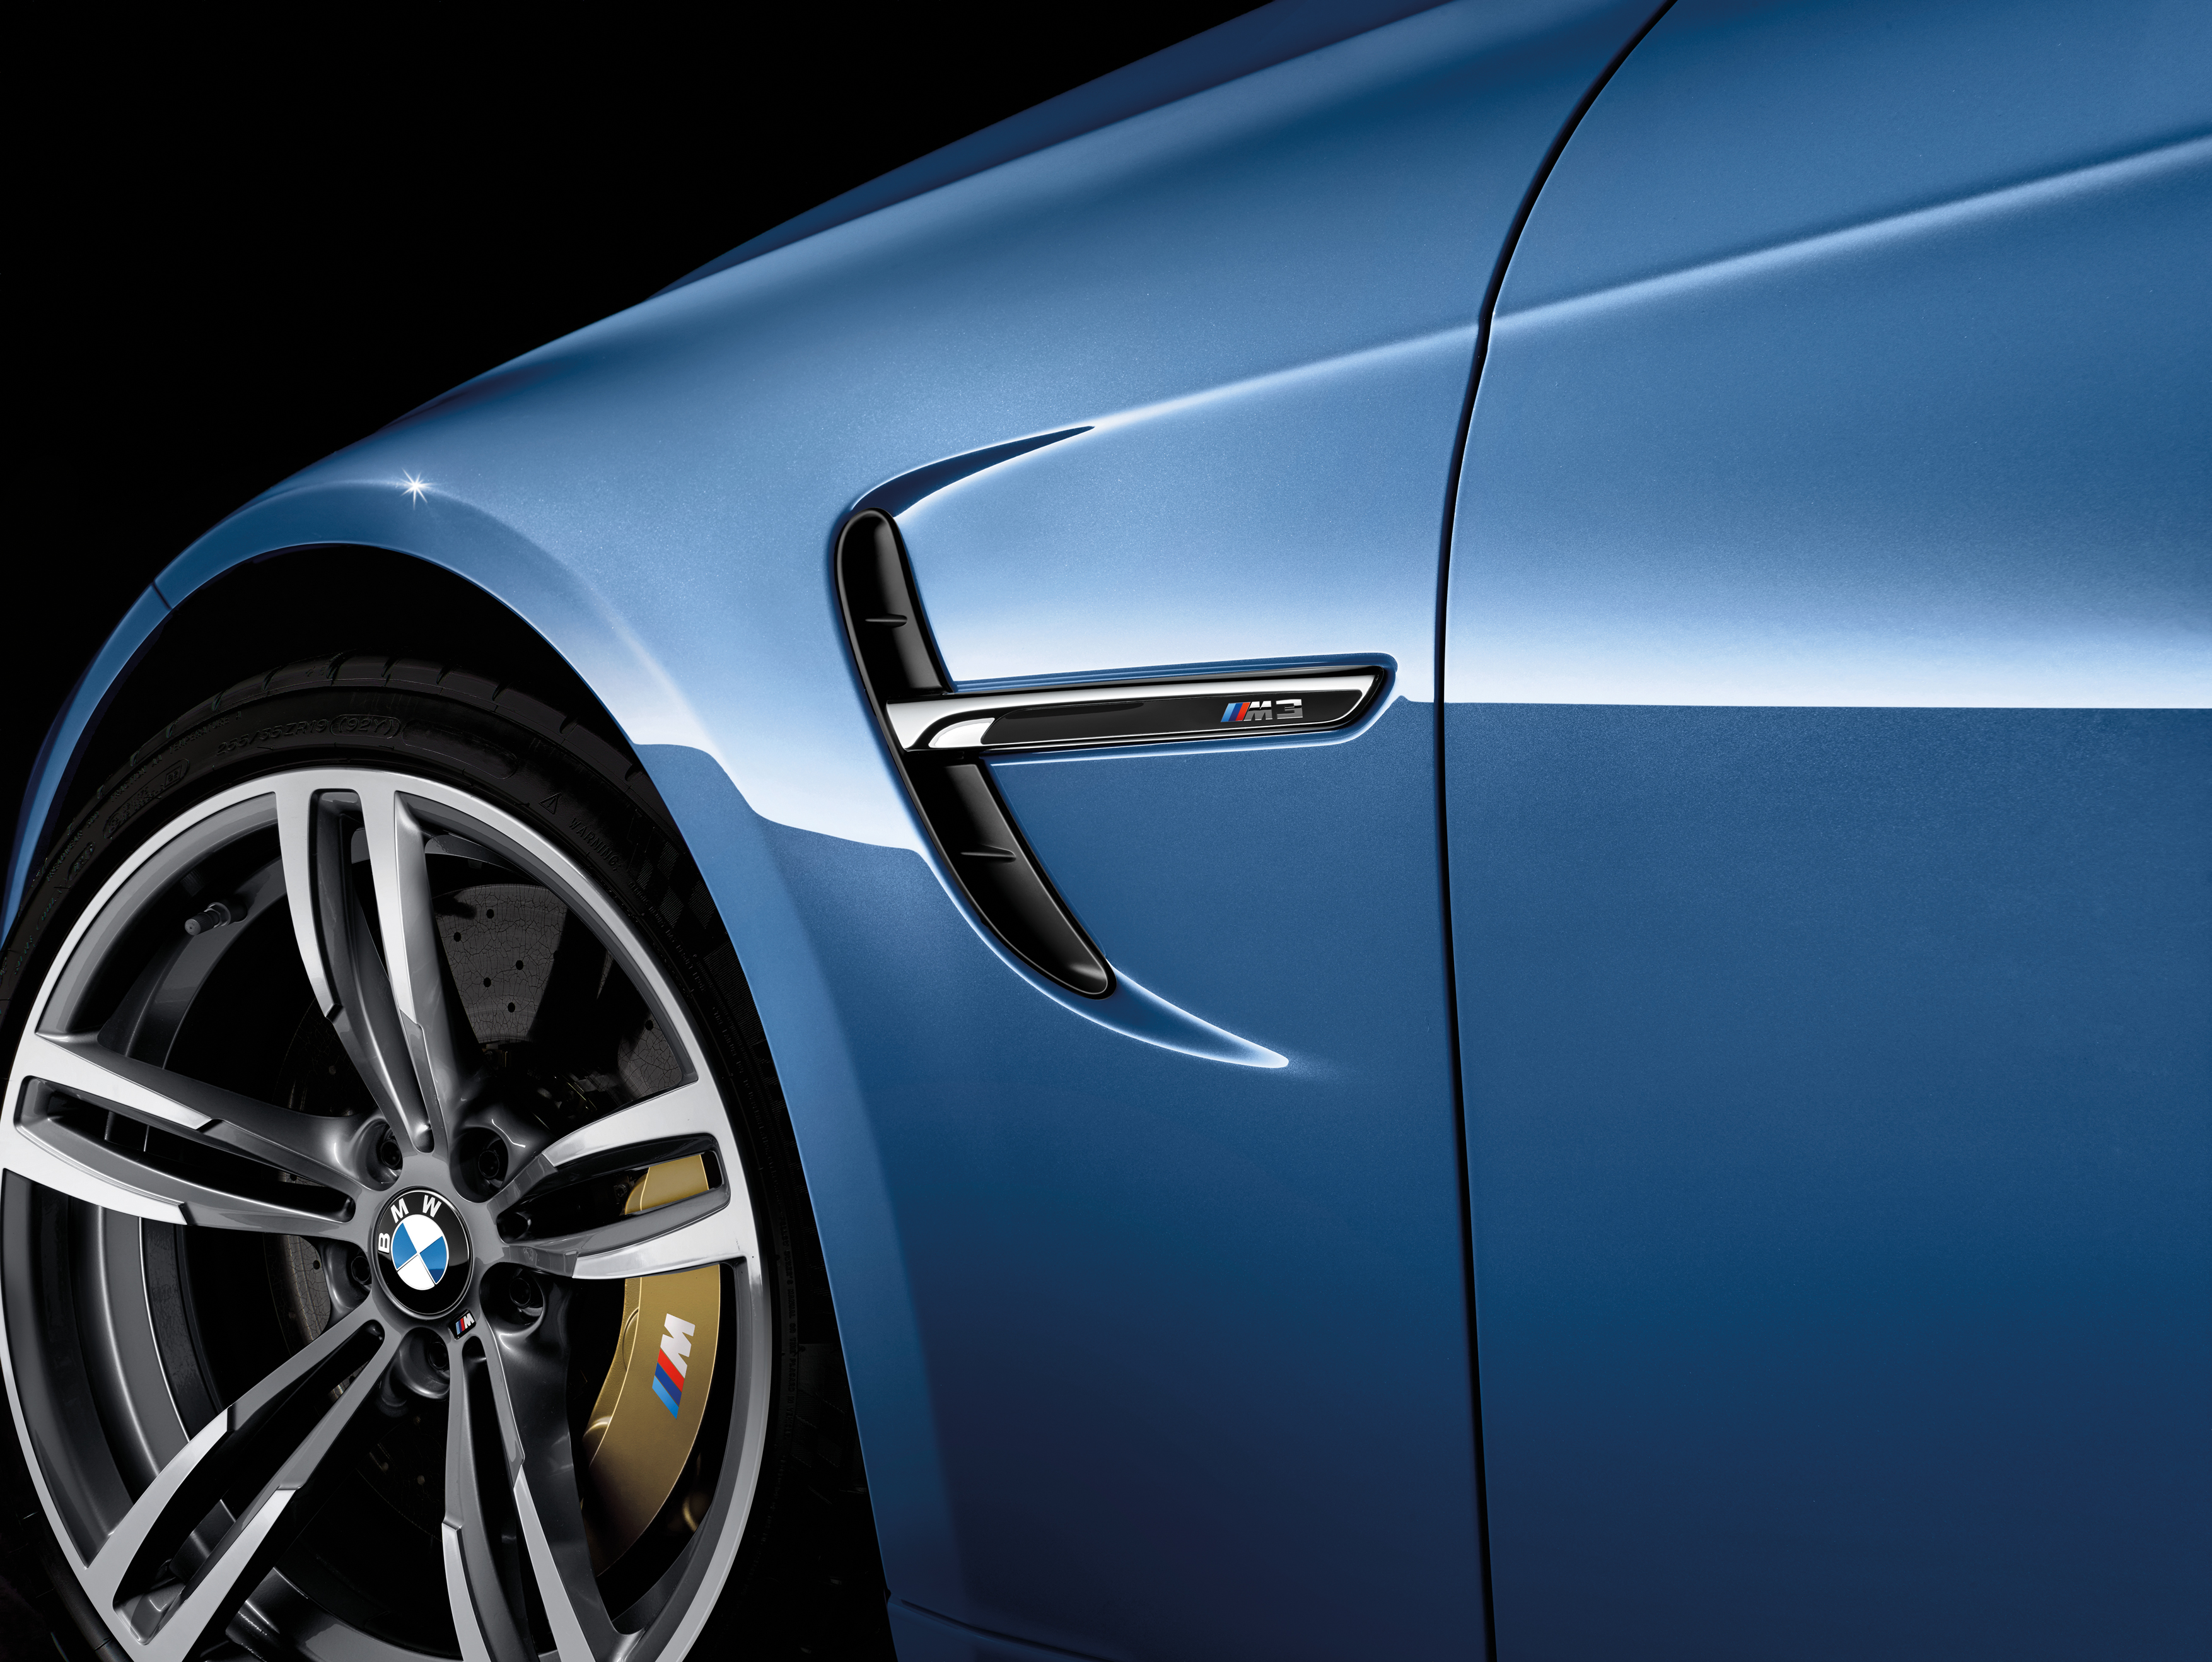 2015 BMW M3 Sedan Stills - (6) - SMADEMEDIA.COM Galleria